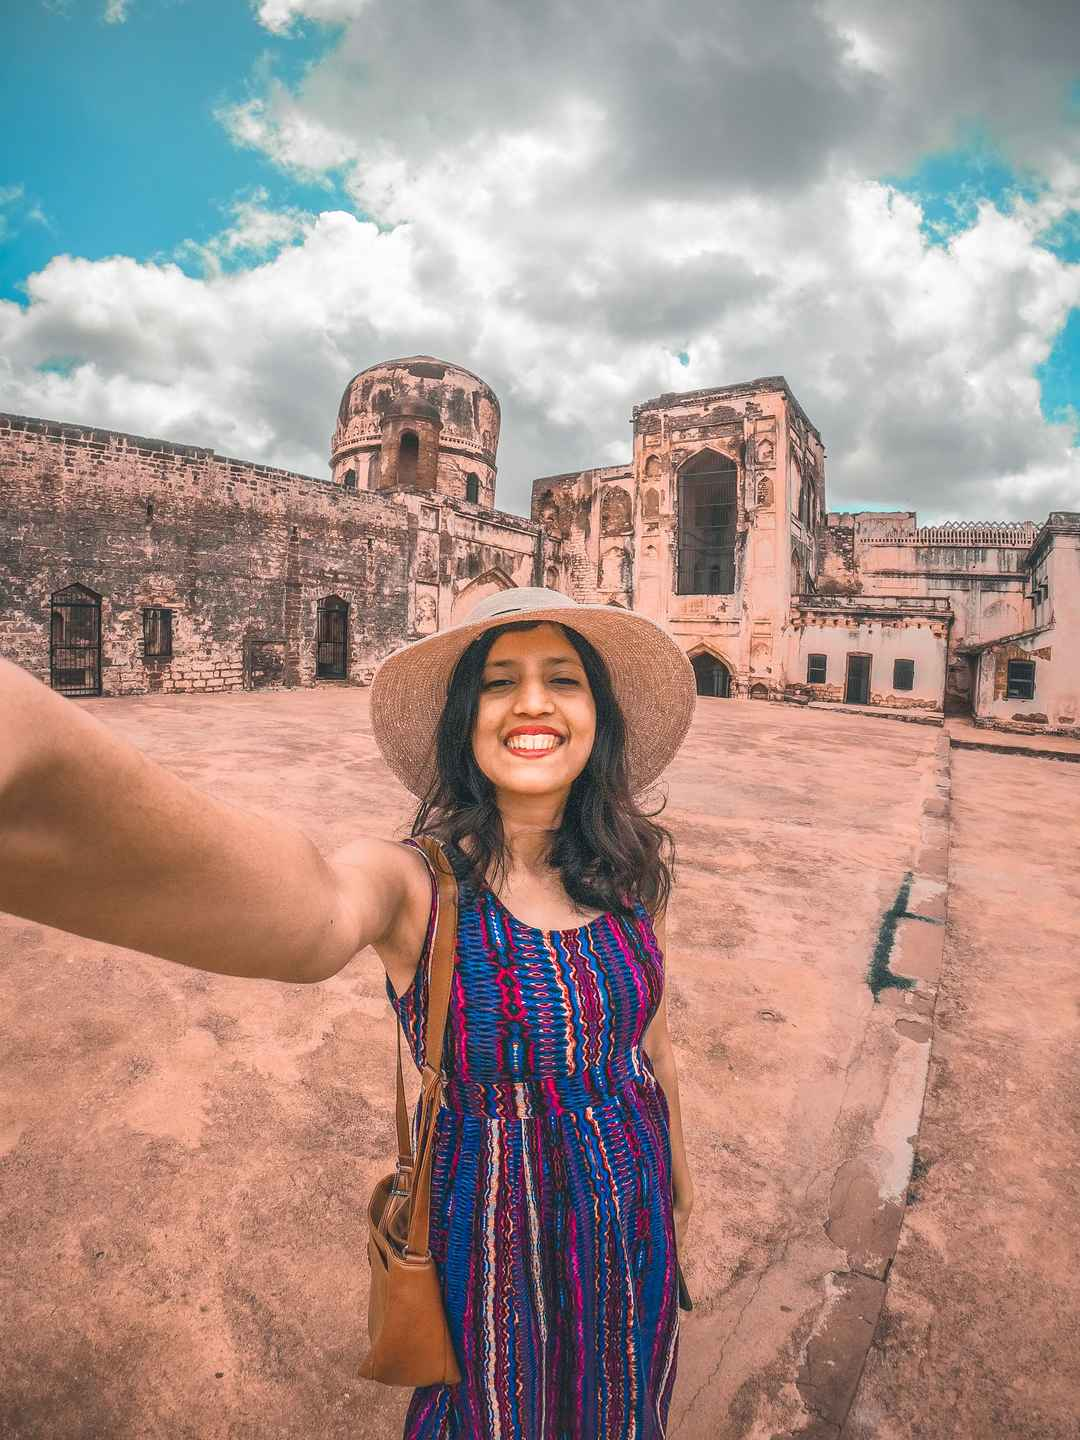 One of the many selfie ???? #selfiewithaview #tripotocommunity